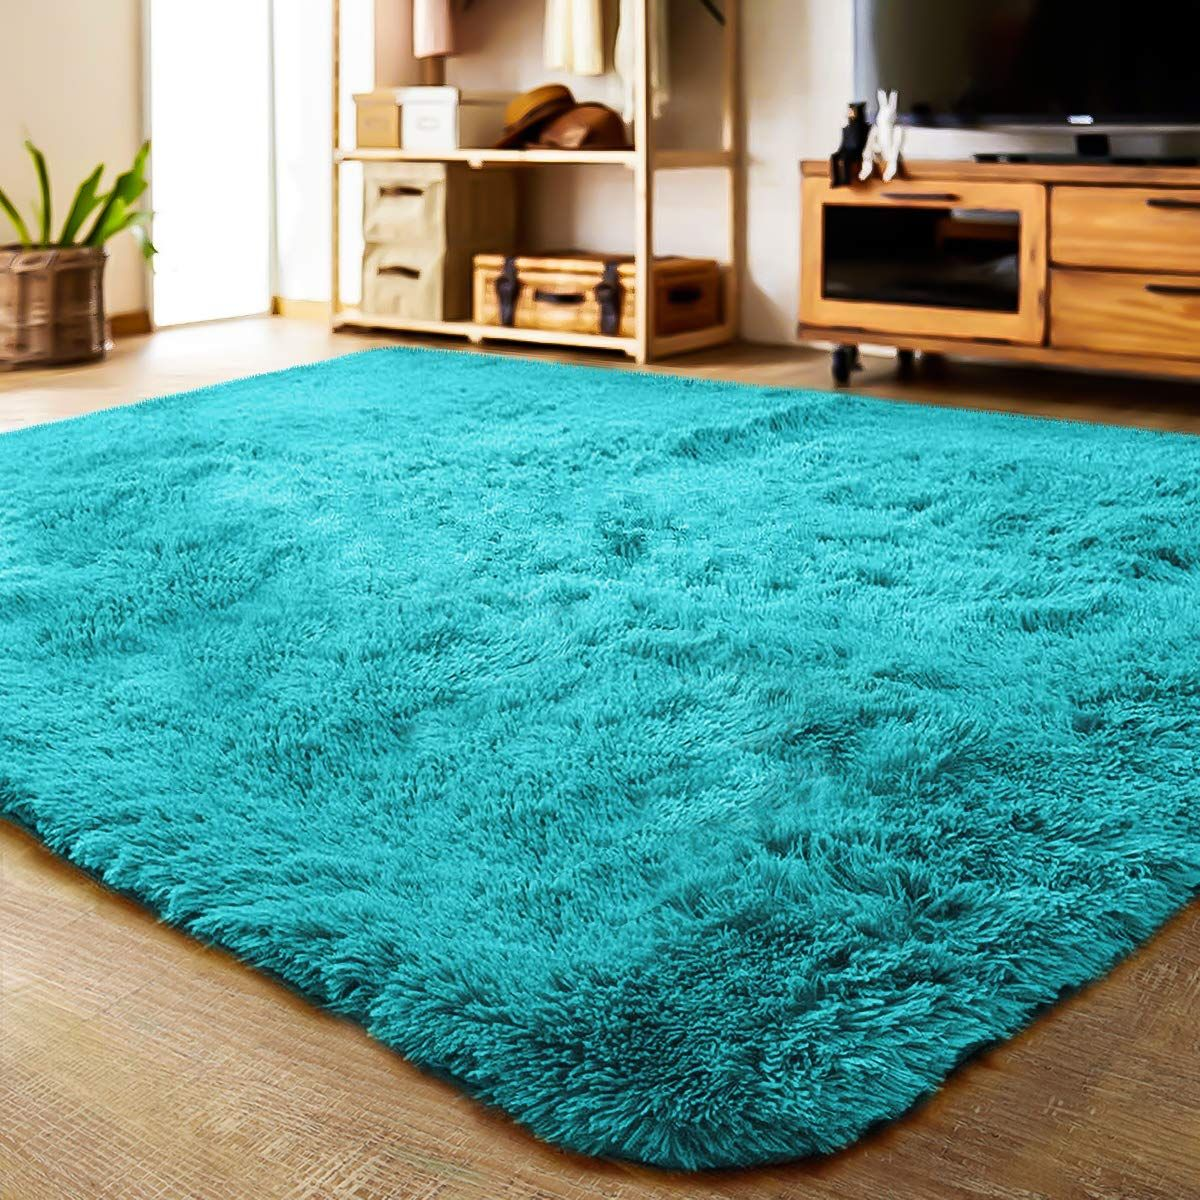 Amazon Com Lochas Ultra Soft Indoor Modern Area Rugs Fluffy Living Room Carpets Suitable For Children Bedroo In 2020 Living Room Carpet Fluffy Rug Rugs In Living Room #soft #plush #area #rugs #for #living #room